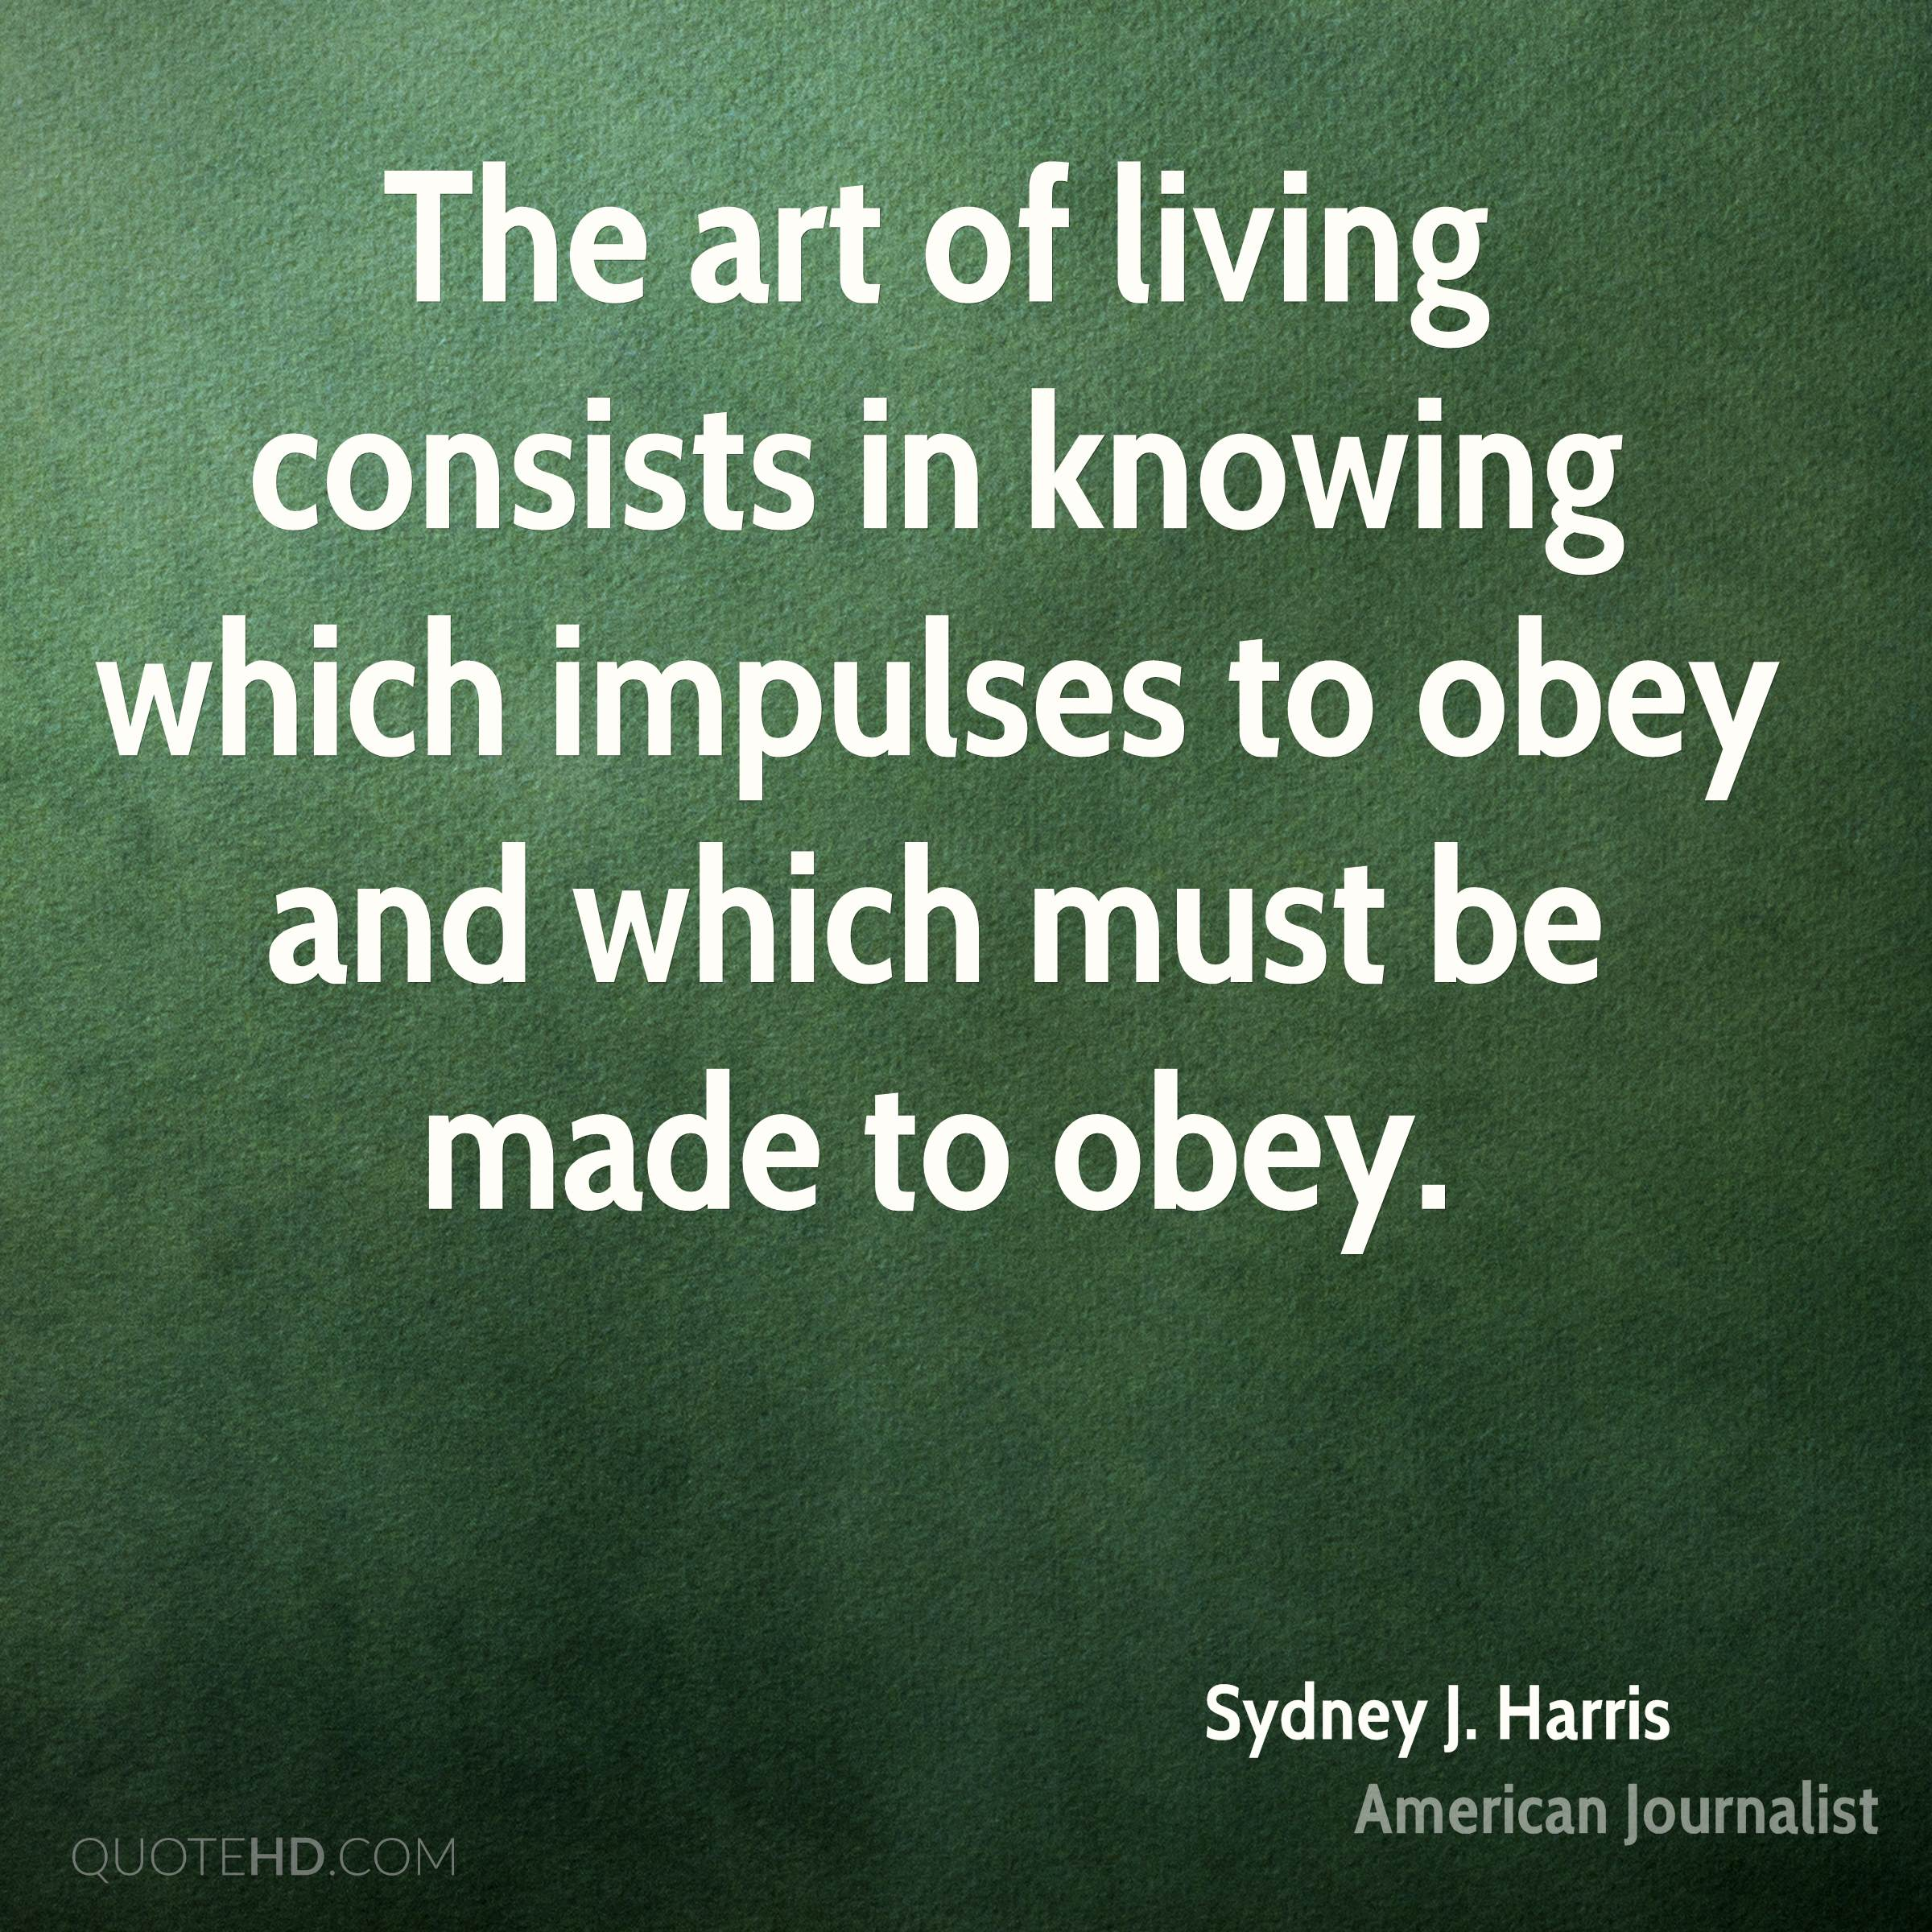 The art of living consists in knowing which impulses to obey and which must be made to obey.